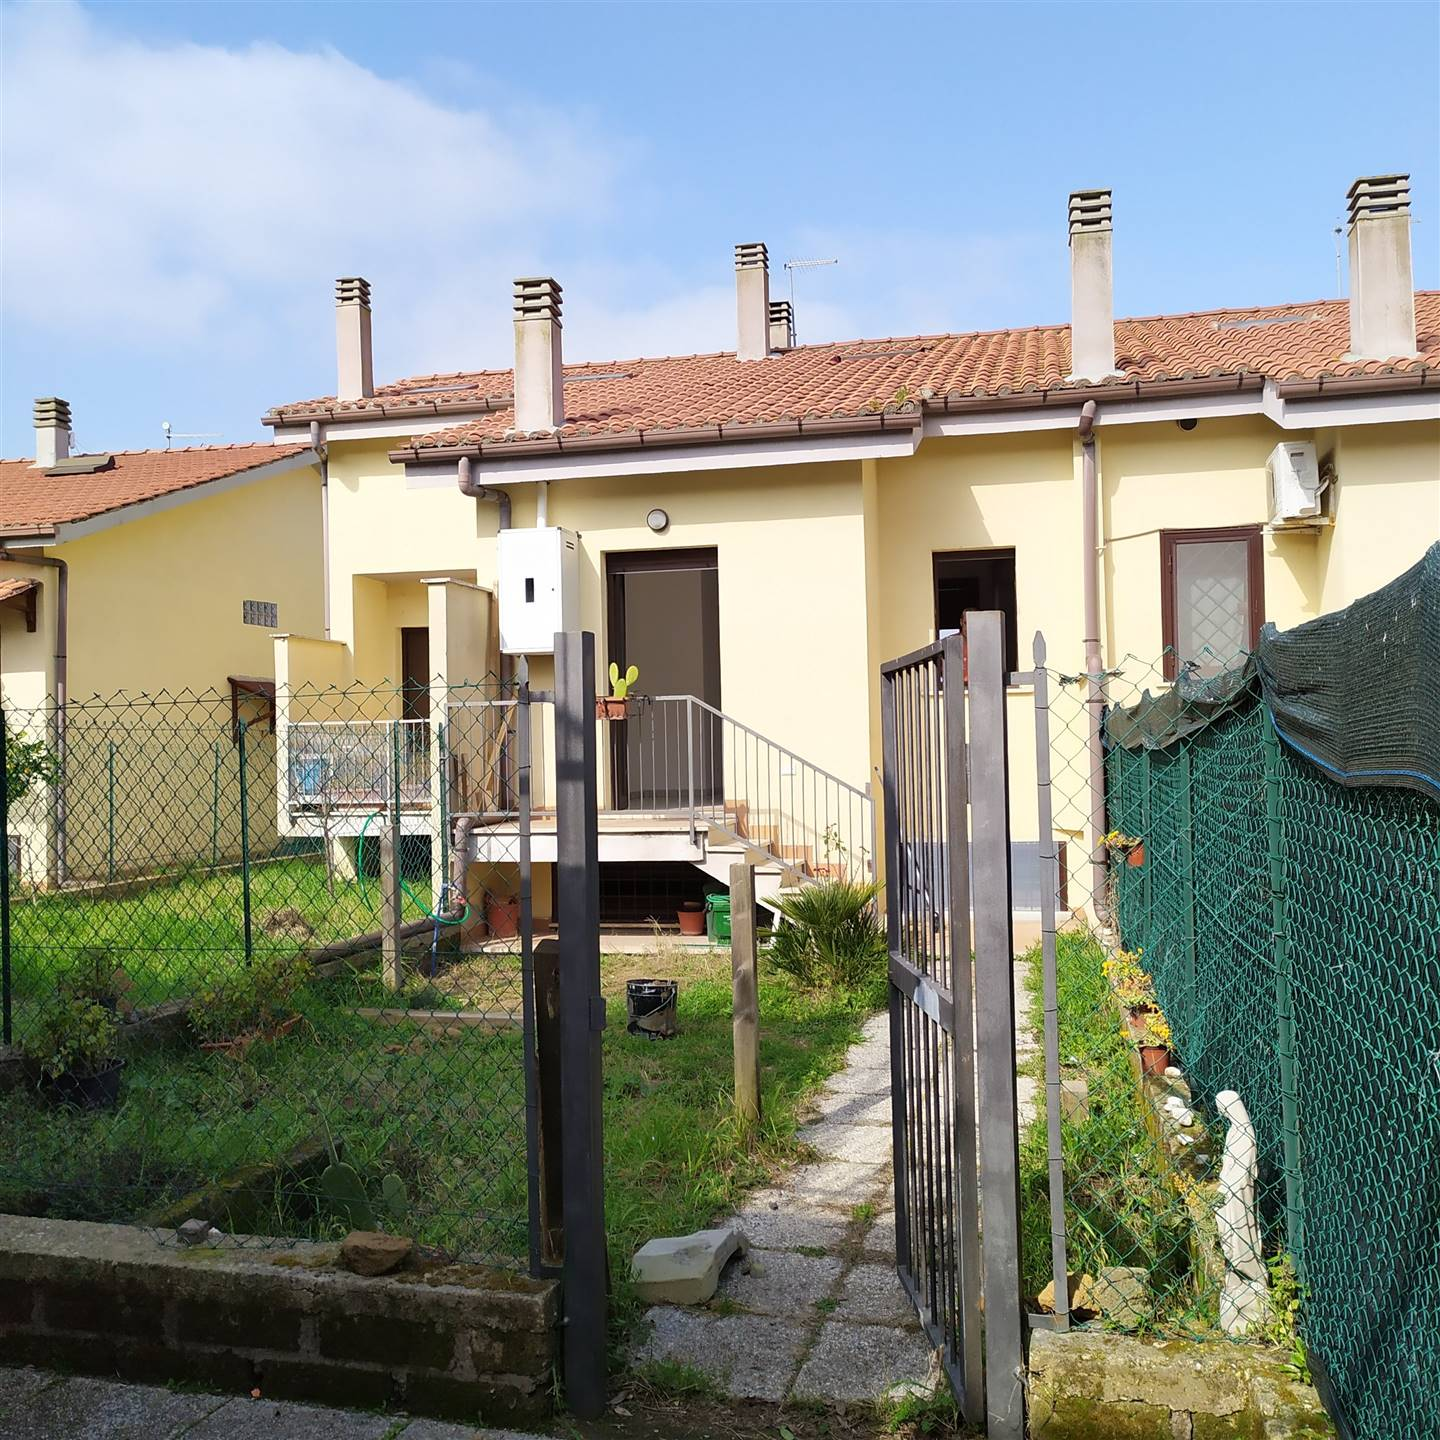 DIVINO AMORE, ROMA, Terraced house for rent of 90 Sq. mt., Excellent Condition, Heating Individual heating system, Energetic class: G, composed by: 4 Rooms, Kitchenette, , 1 Bedroom, 2 Bathrooms,